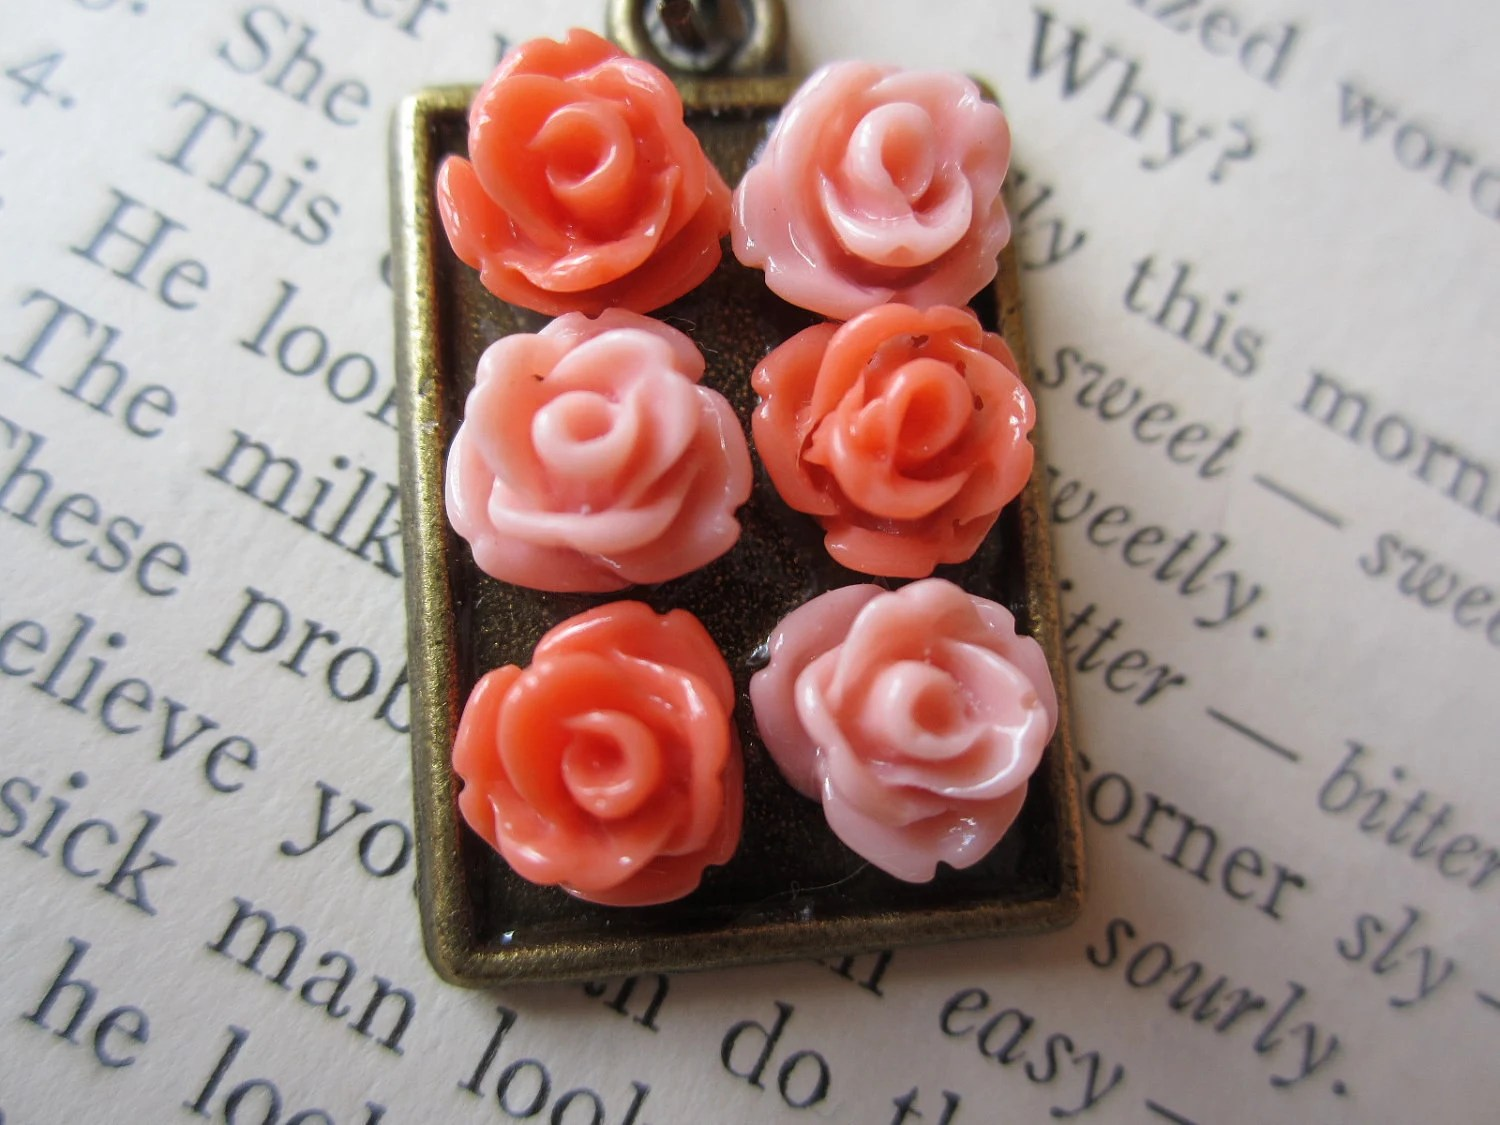 Mini Bouquet Necklace in Rustic Pinks - RefinedRubbishLLC